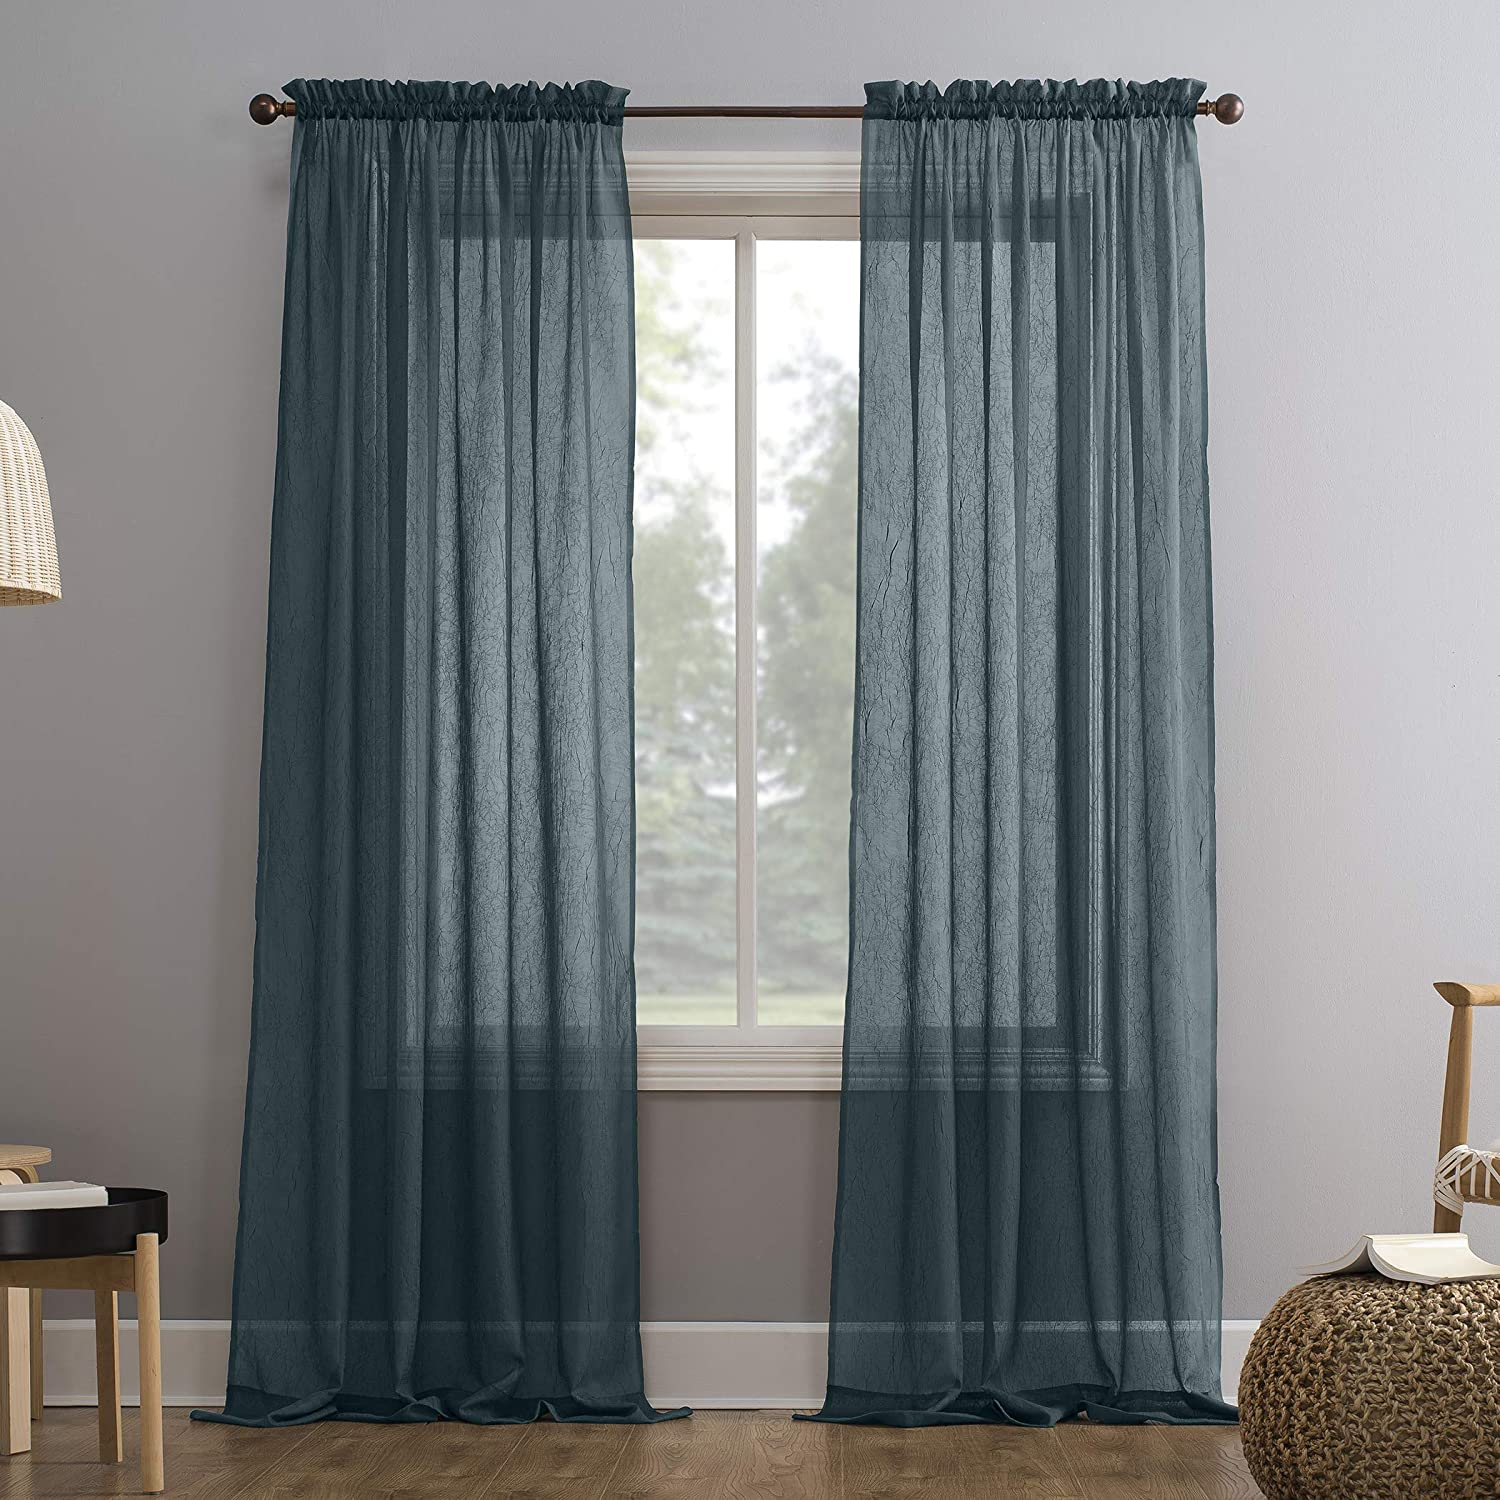 "No. 918 Erica Crushed Texture Sheer Voile Rod Pocket Curtain Panel, 51"" x 63"", Teal"